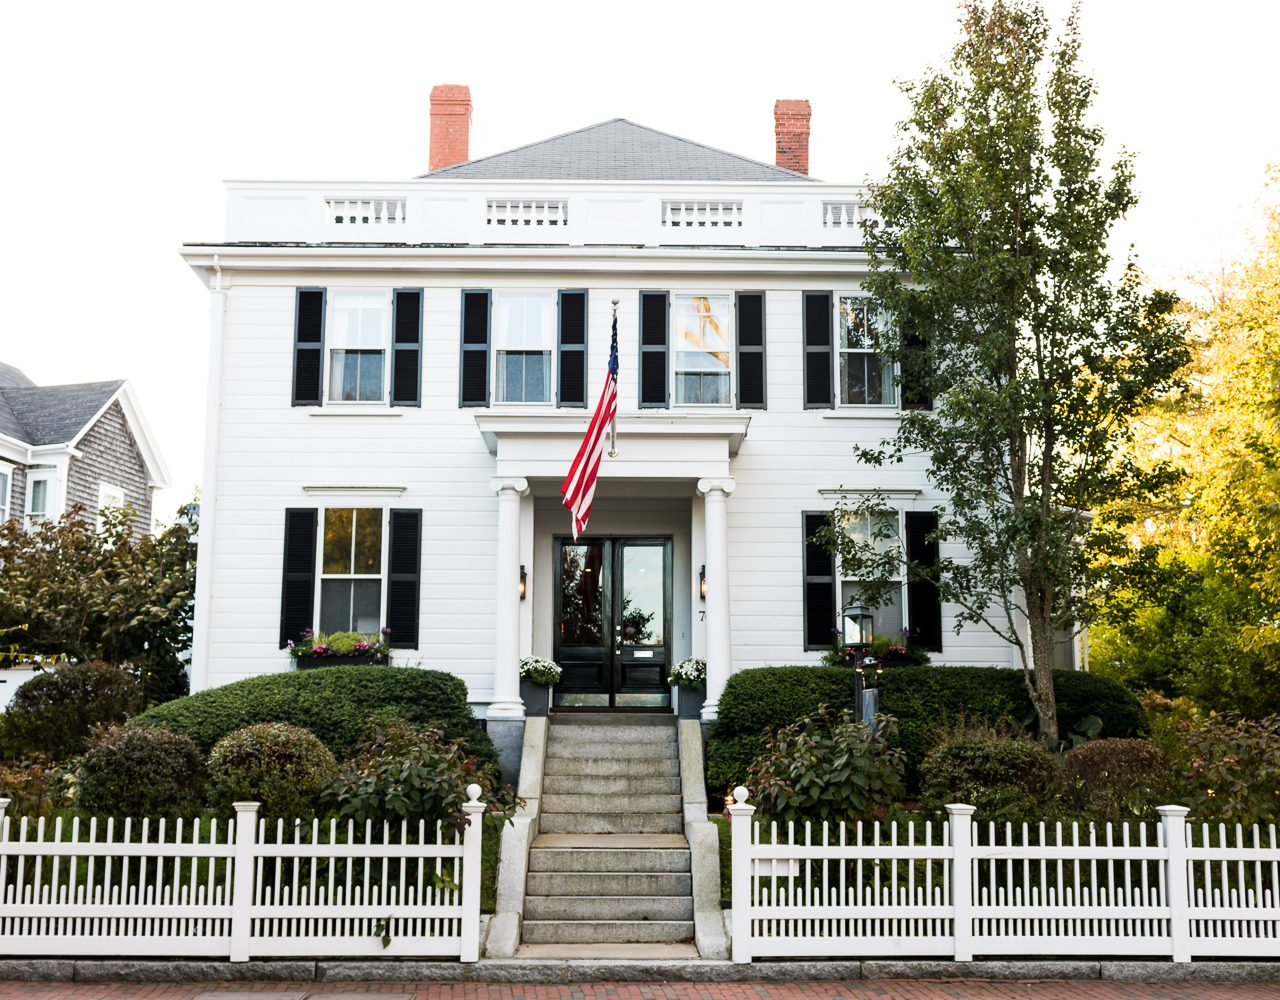 Travel // Where to Stay in Nantucket: 76 Main